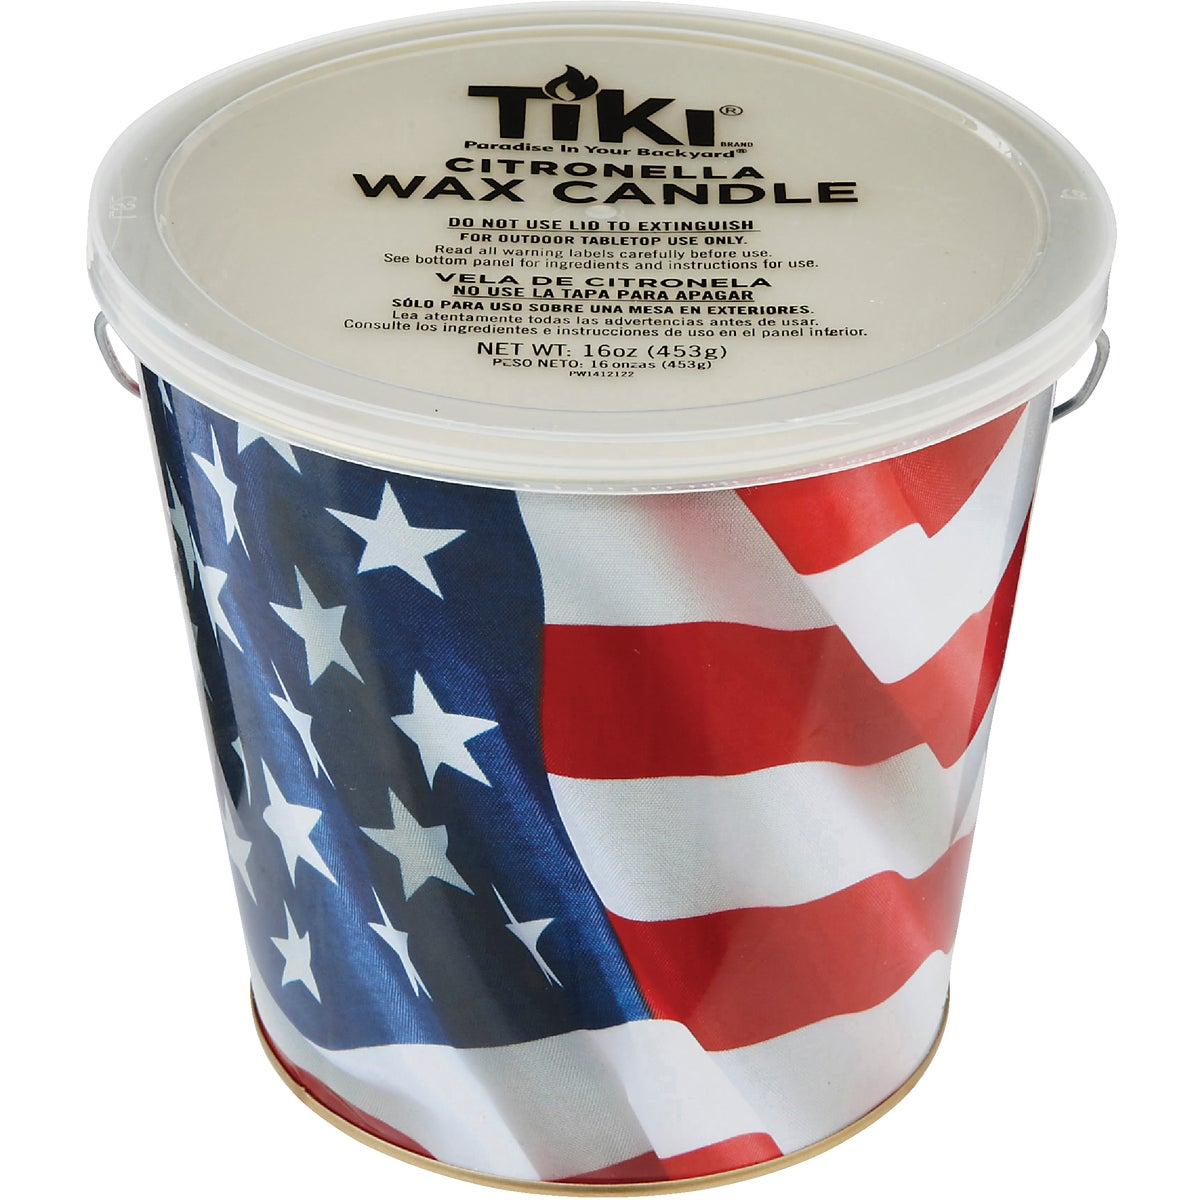 AMER CITRONELLA BUCKET - 1412122 by Lamplight Farms